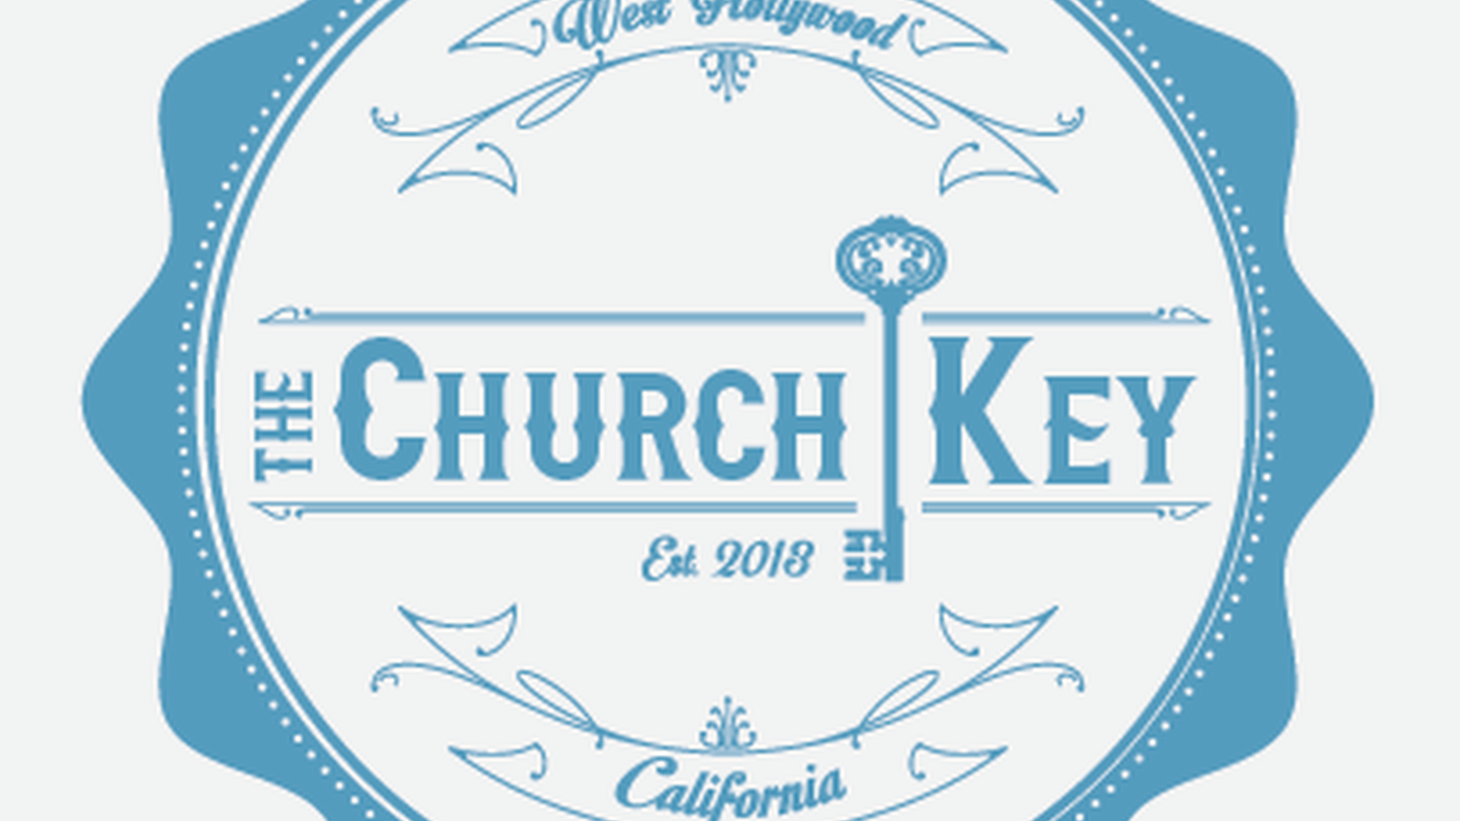 Pulitzer Prize-winning food writer Jonathan GoldreviewsThe Church Key, a new restaurant in West Hollywood with executive chef Steven Fretz.